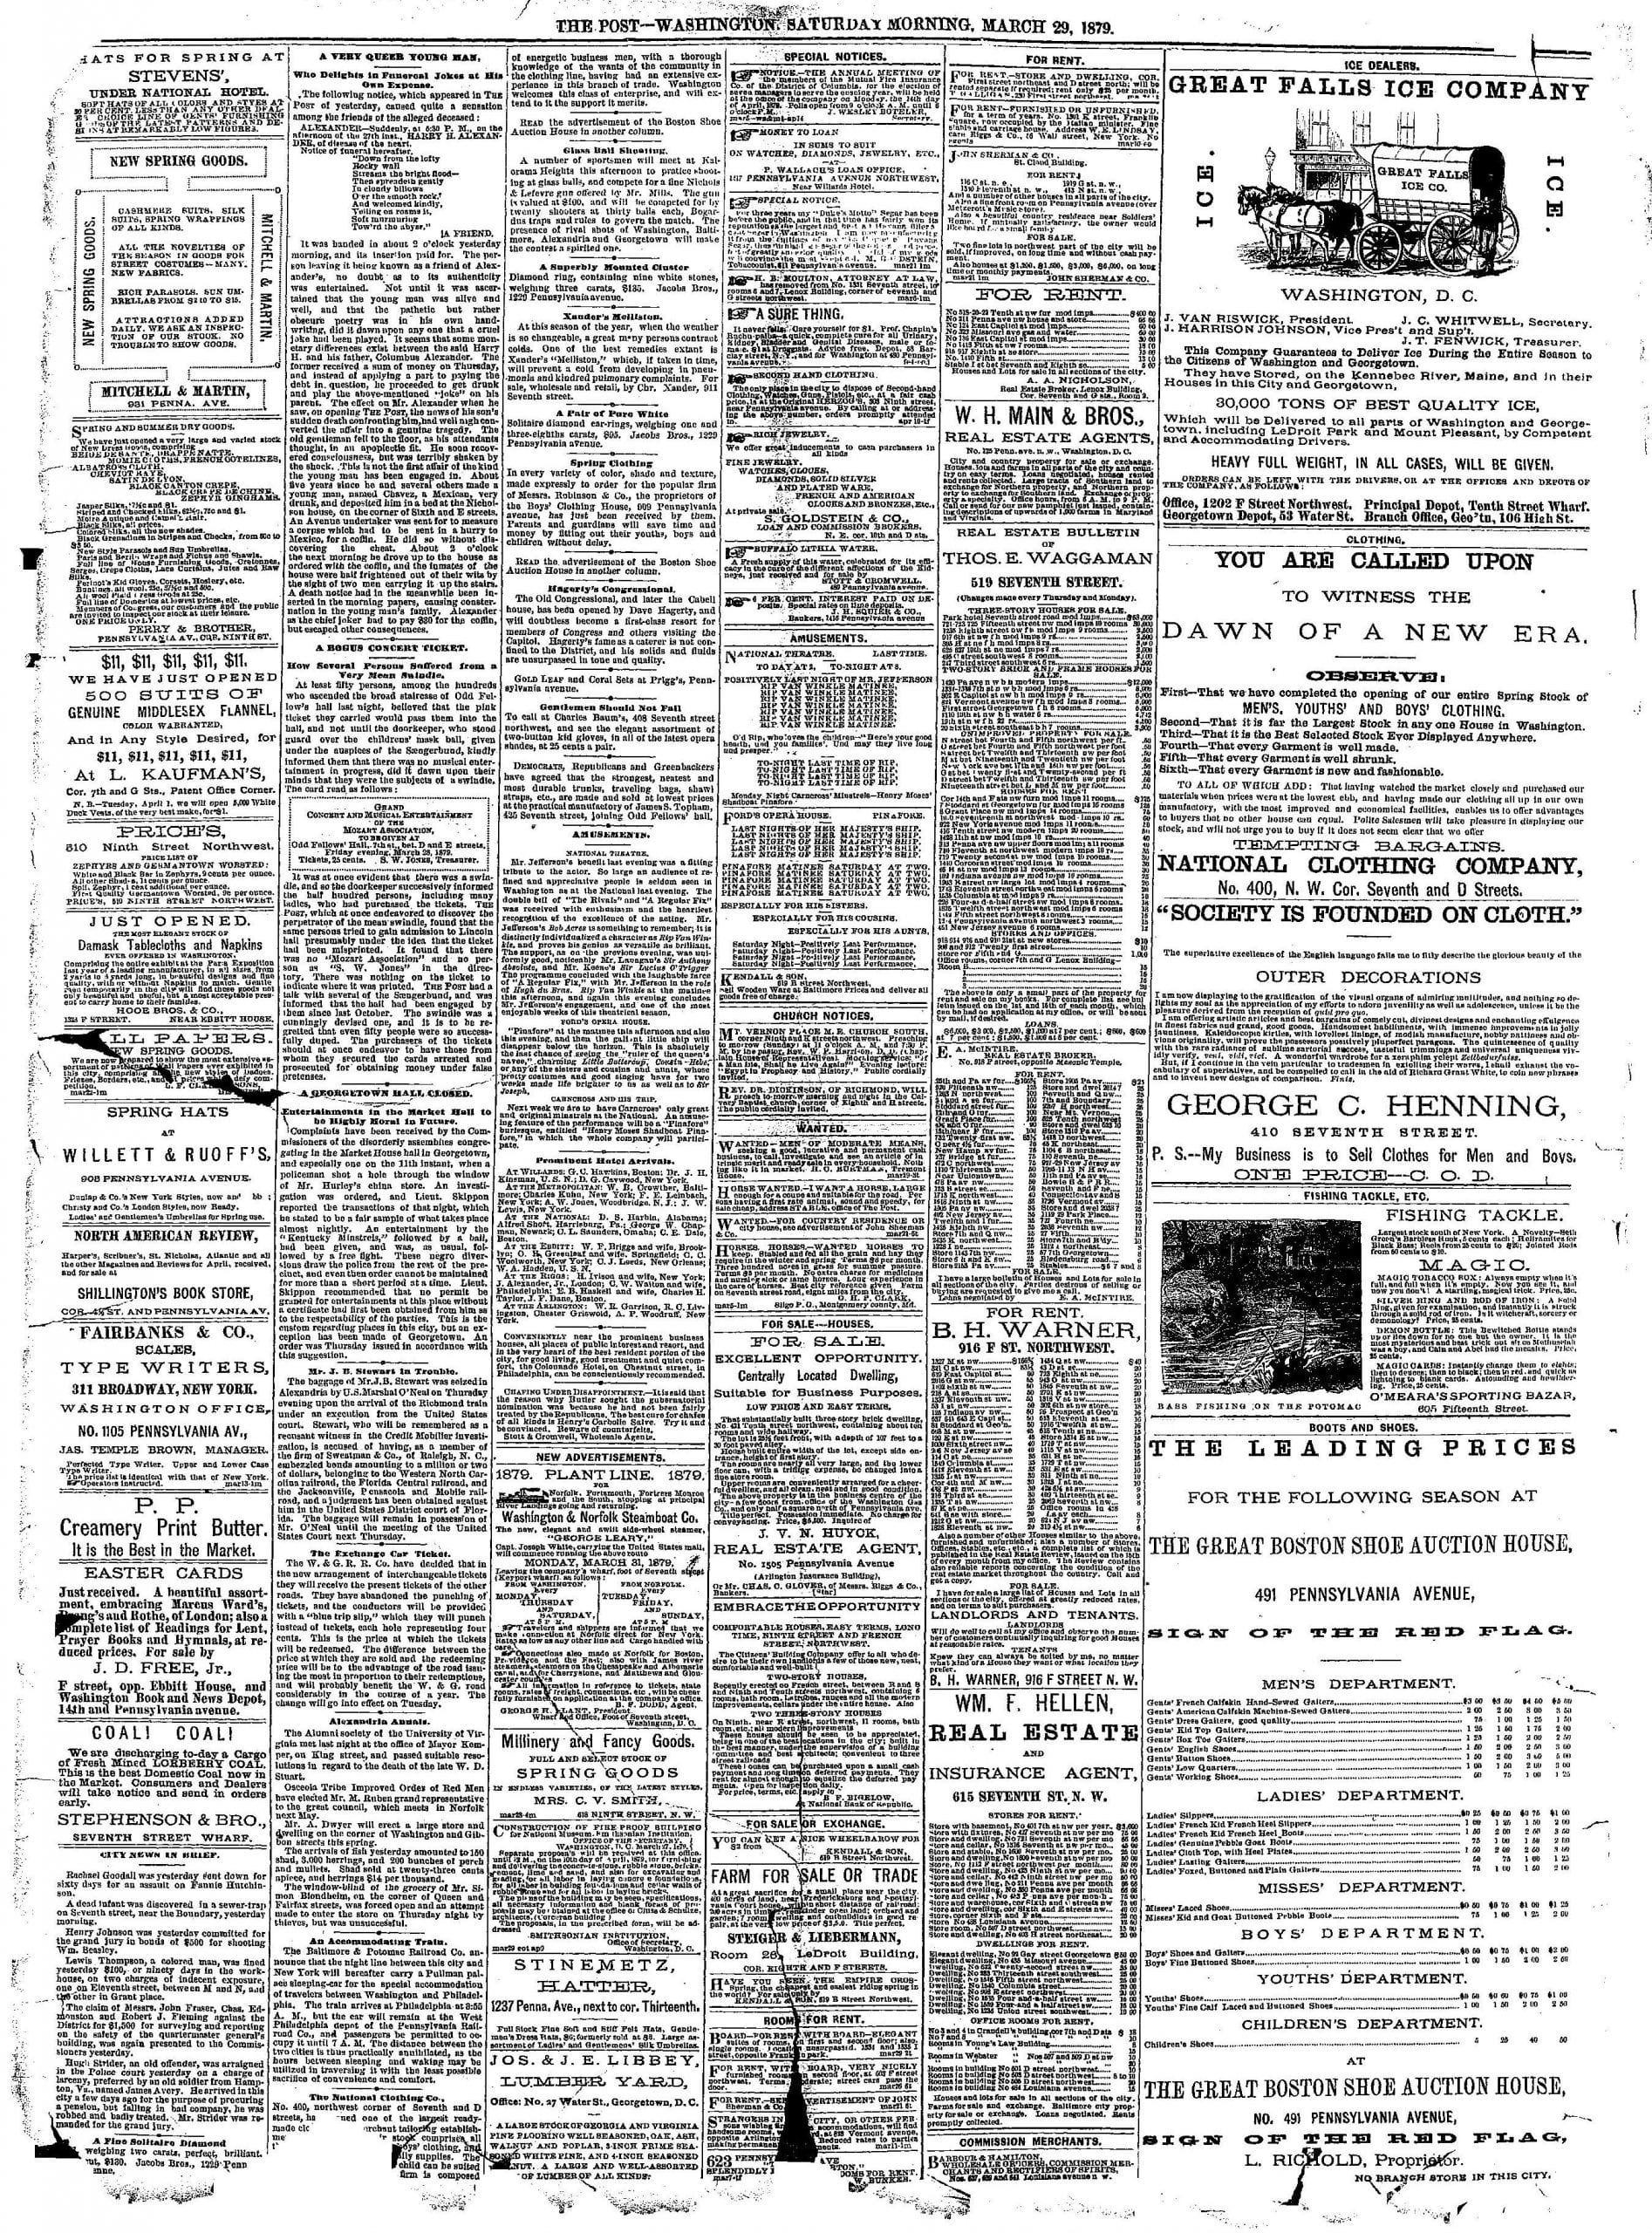 Washington Post classifieds - March 29th, 1879